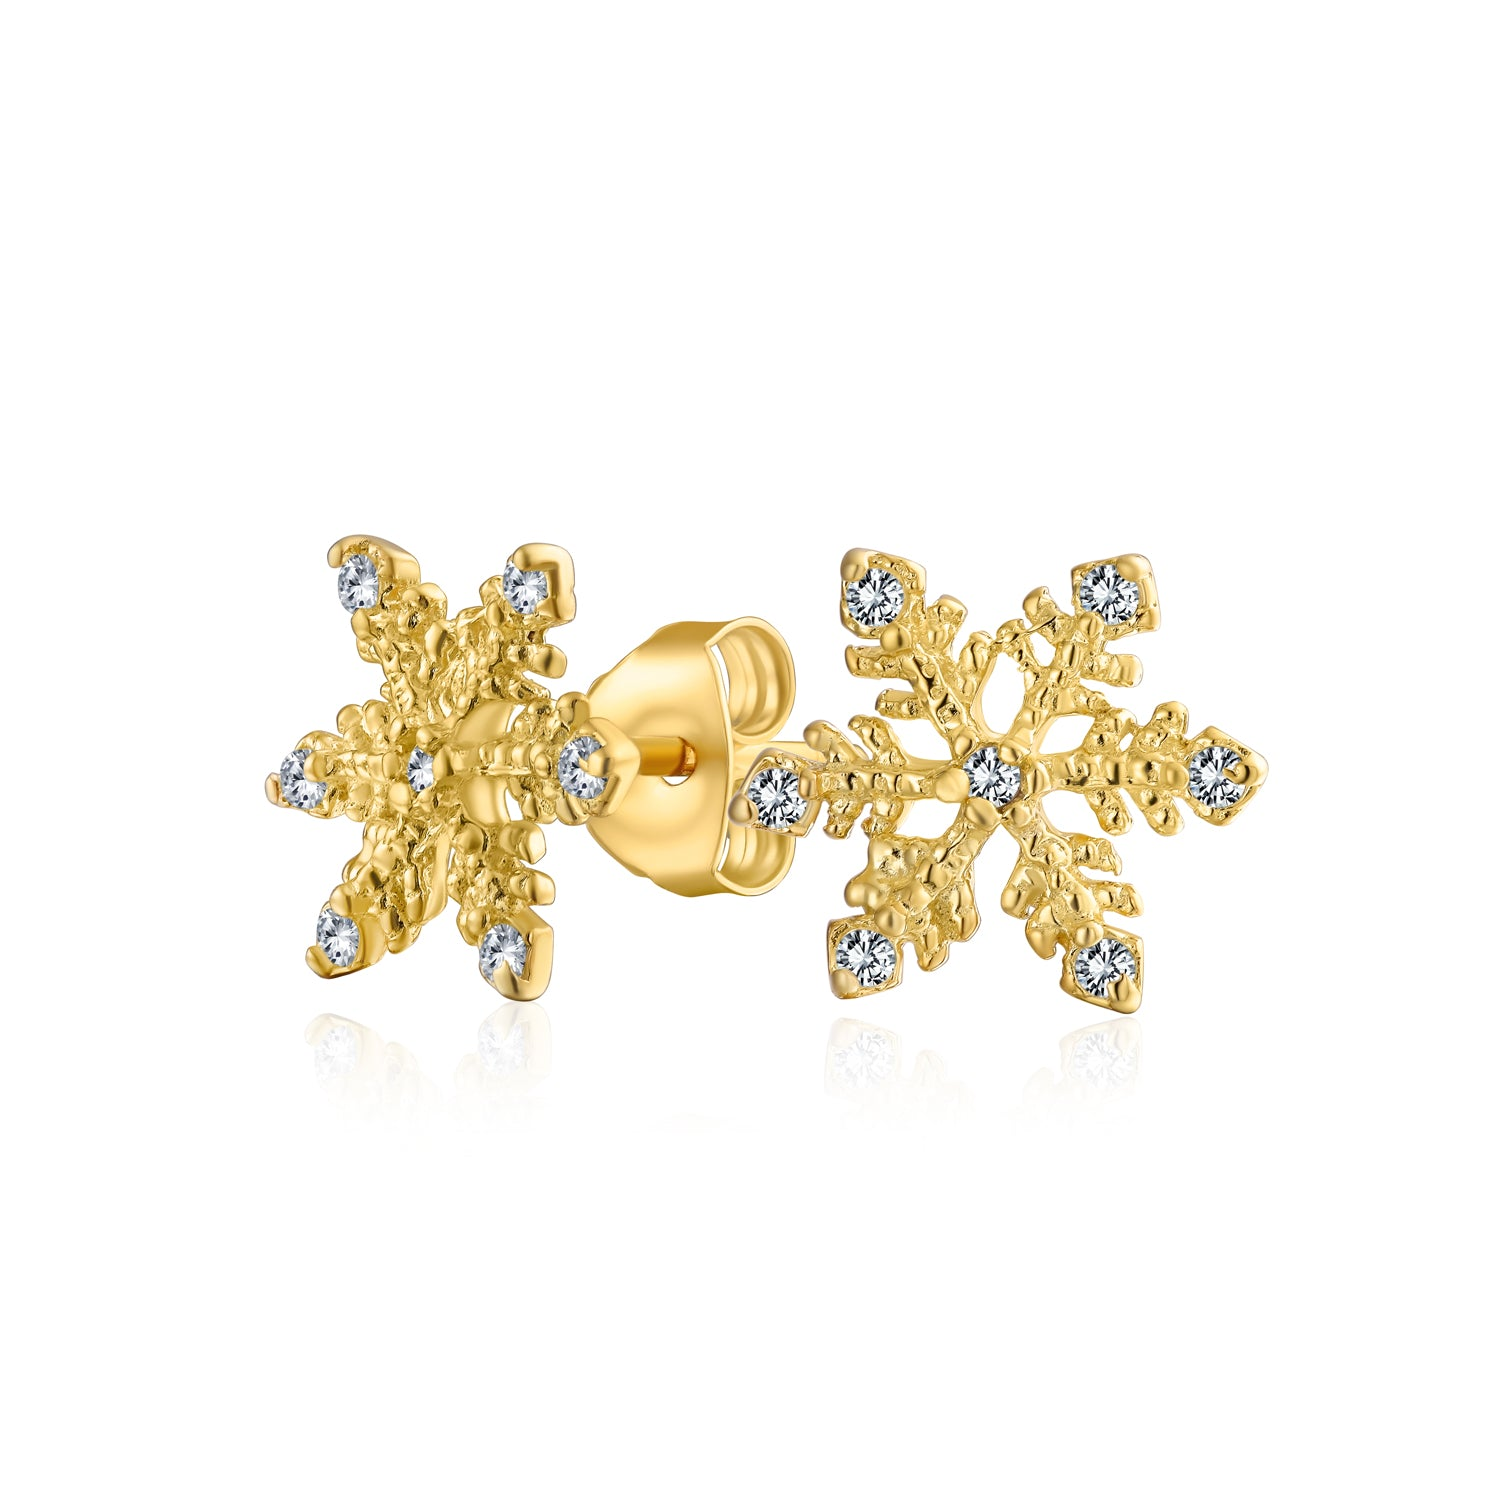 Glittery Snowflake Stud Earrings 925 Sterling Silver or Silver Plated Studs